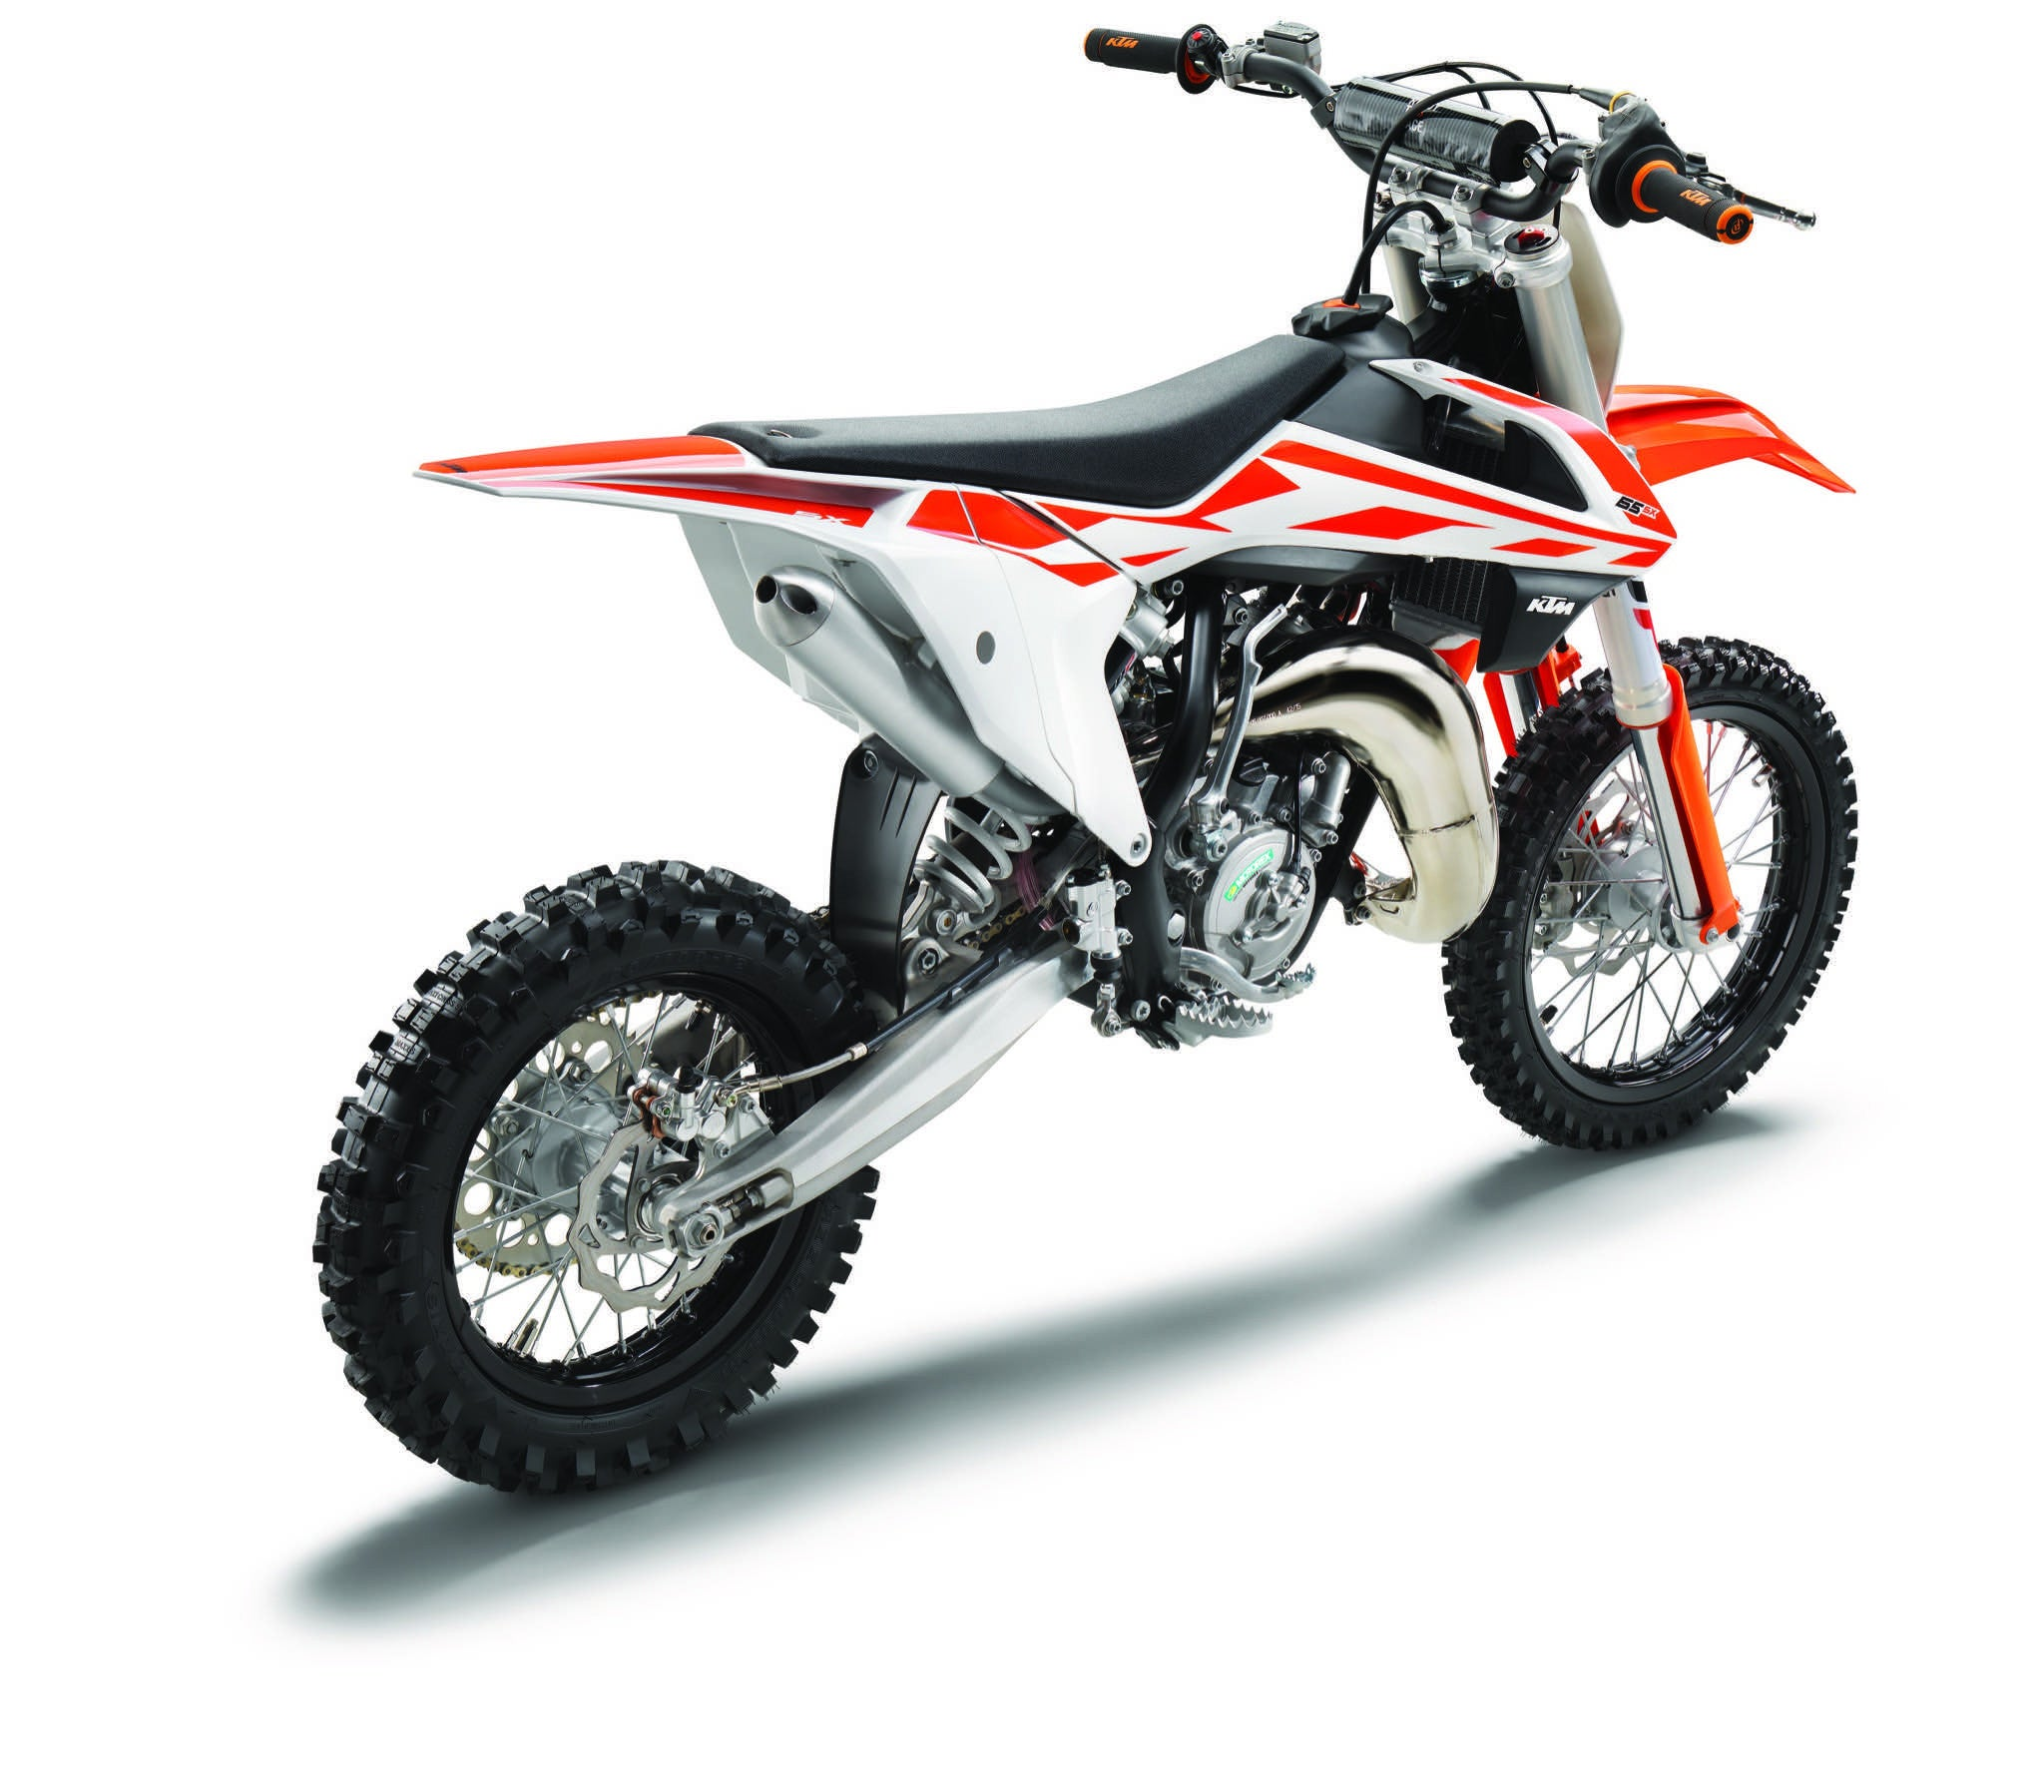 2018 ktm 65 sx. delighful ktm 2017 ktm 65 sx  motorcycle for sale central florida powersports throughout 2018 ktm sx